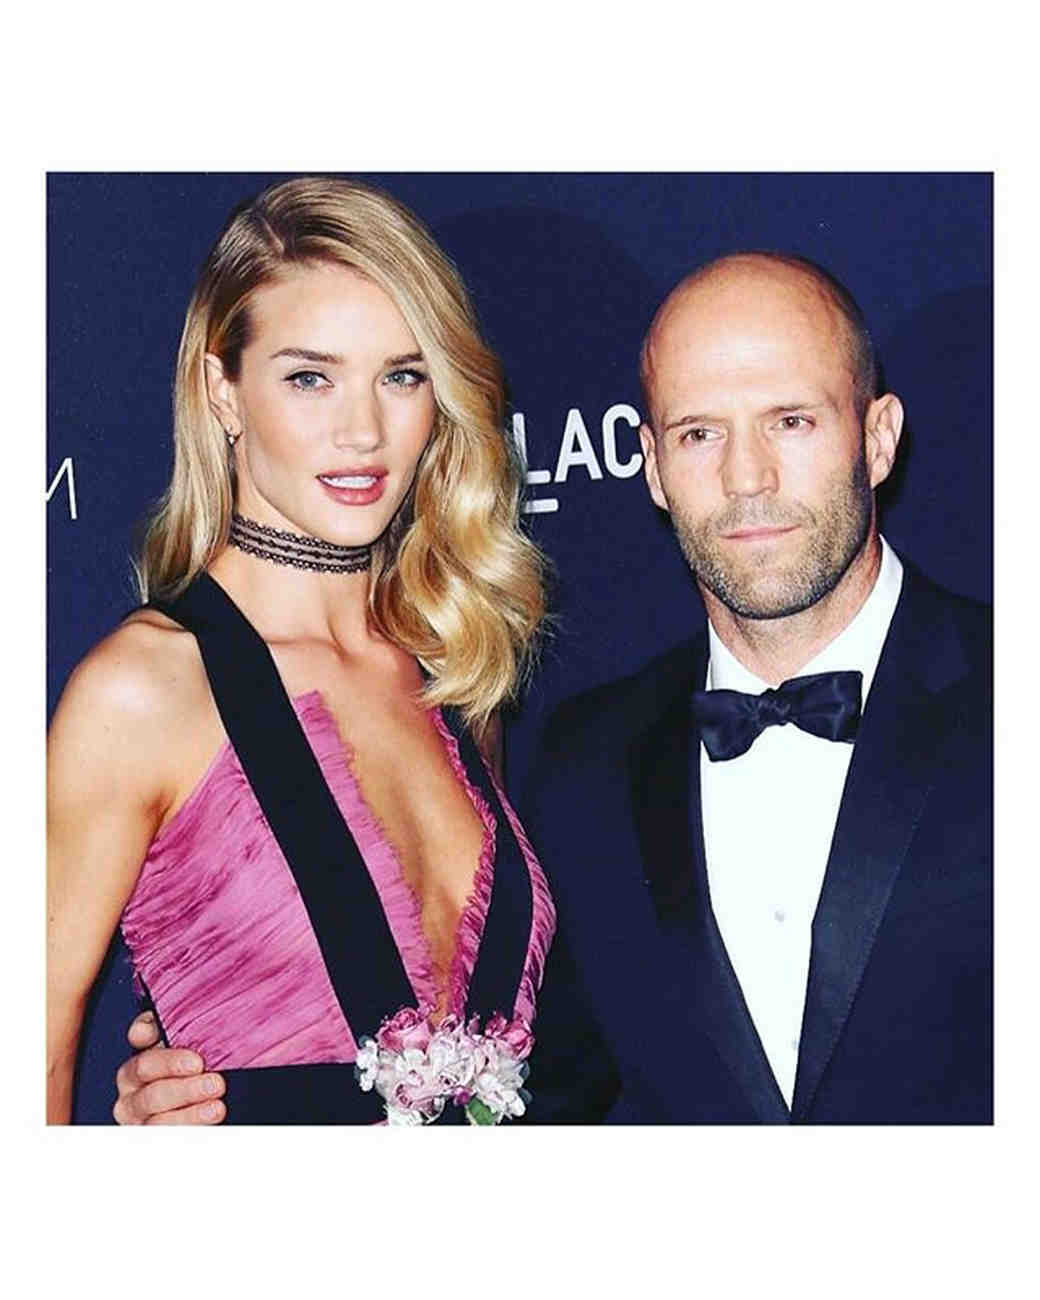 celebrity-couples-we-hope-get-engaged-rosie-huntington-whiteley-jason-statham-1215.jpeg